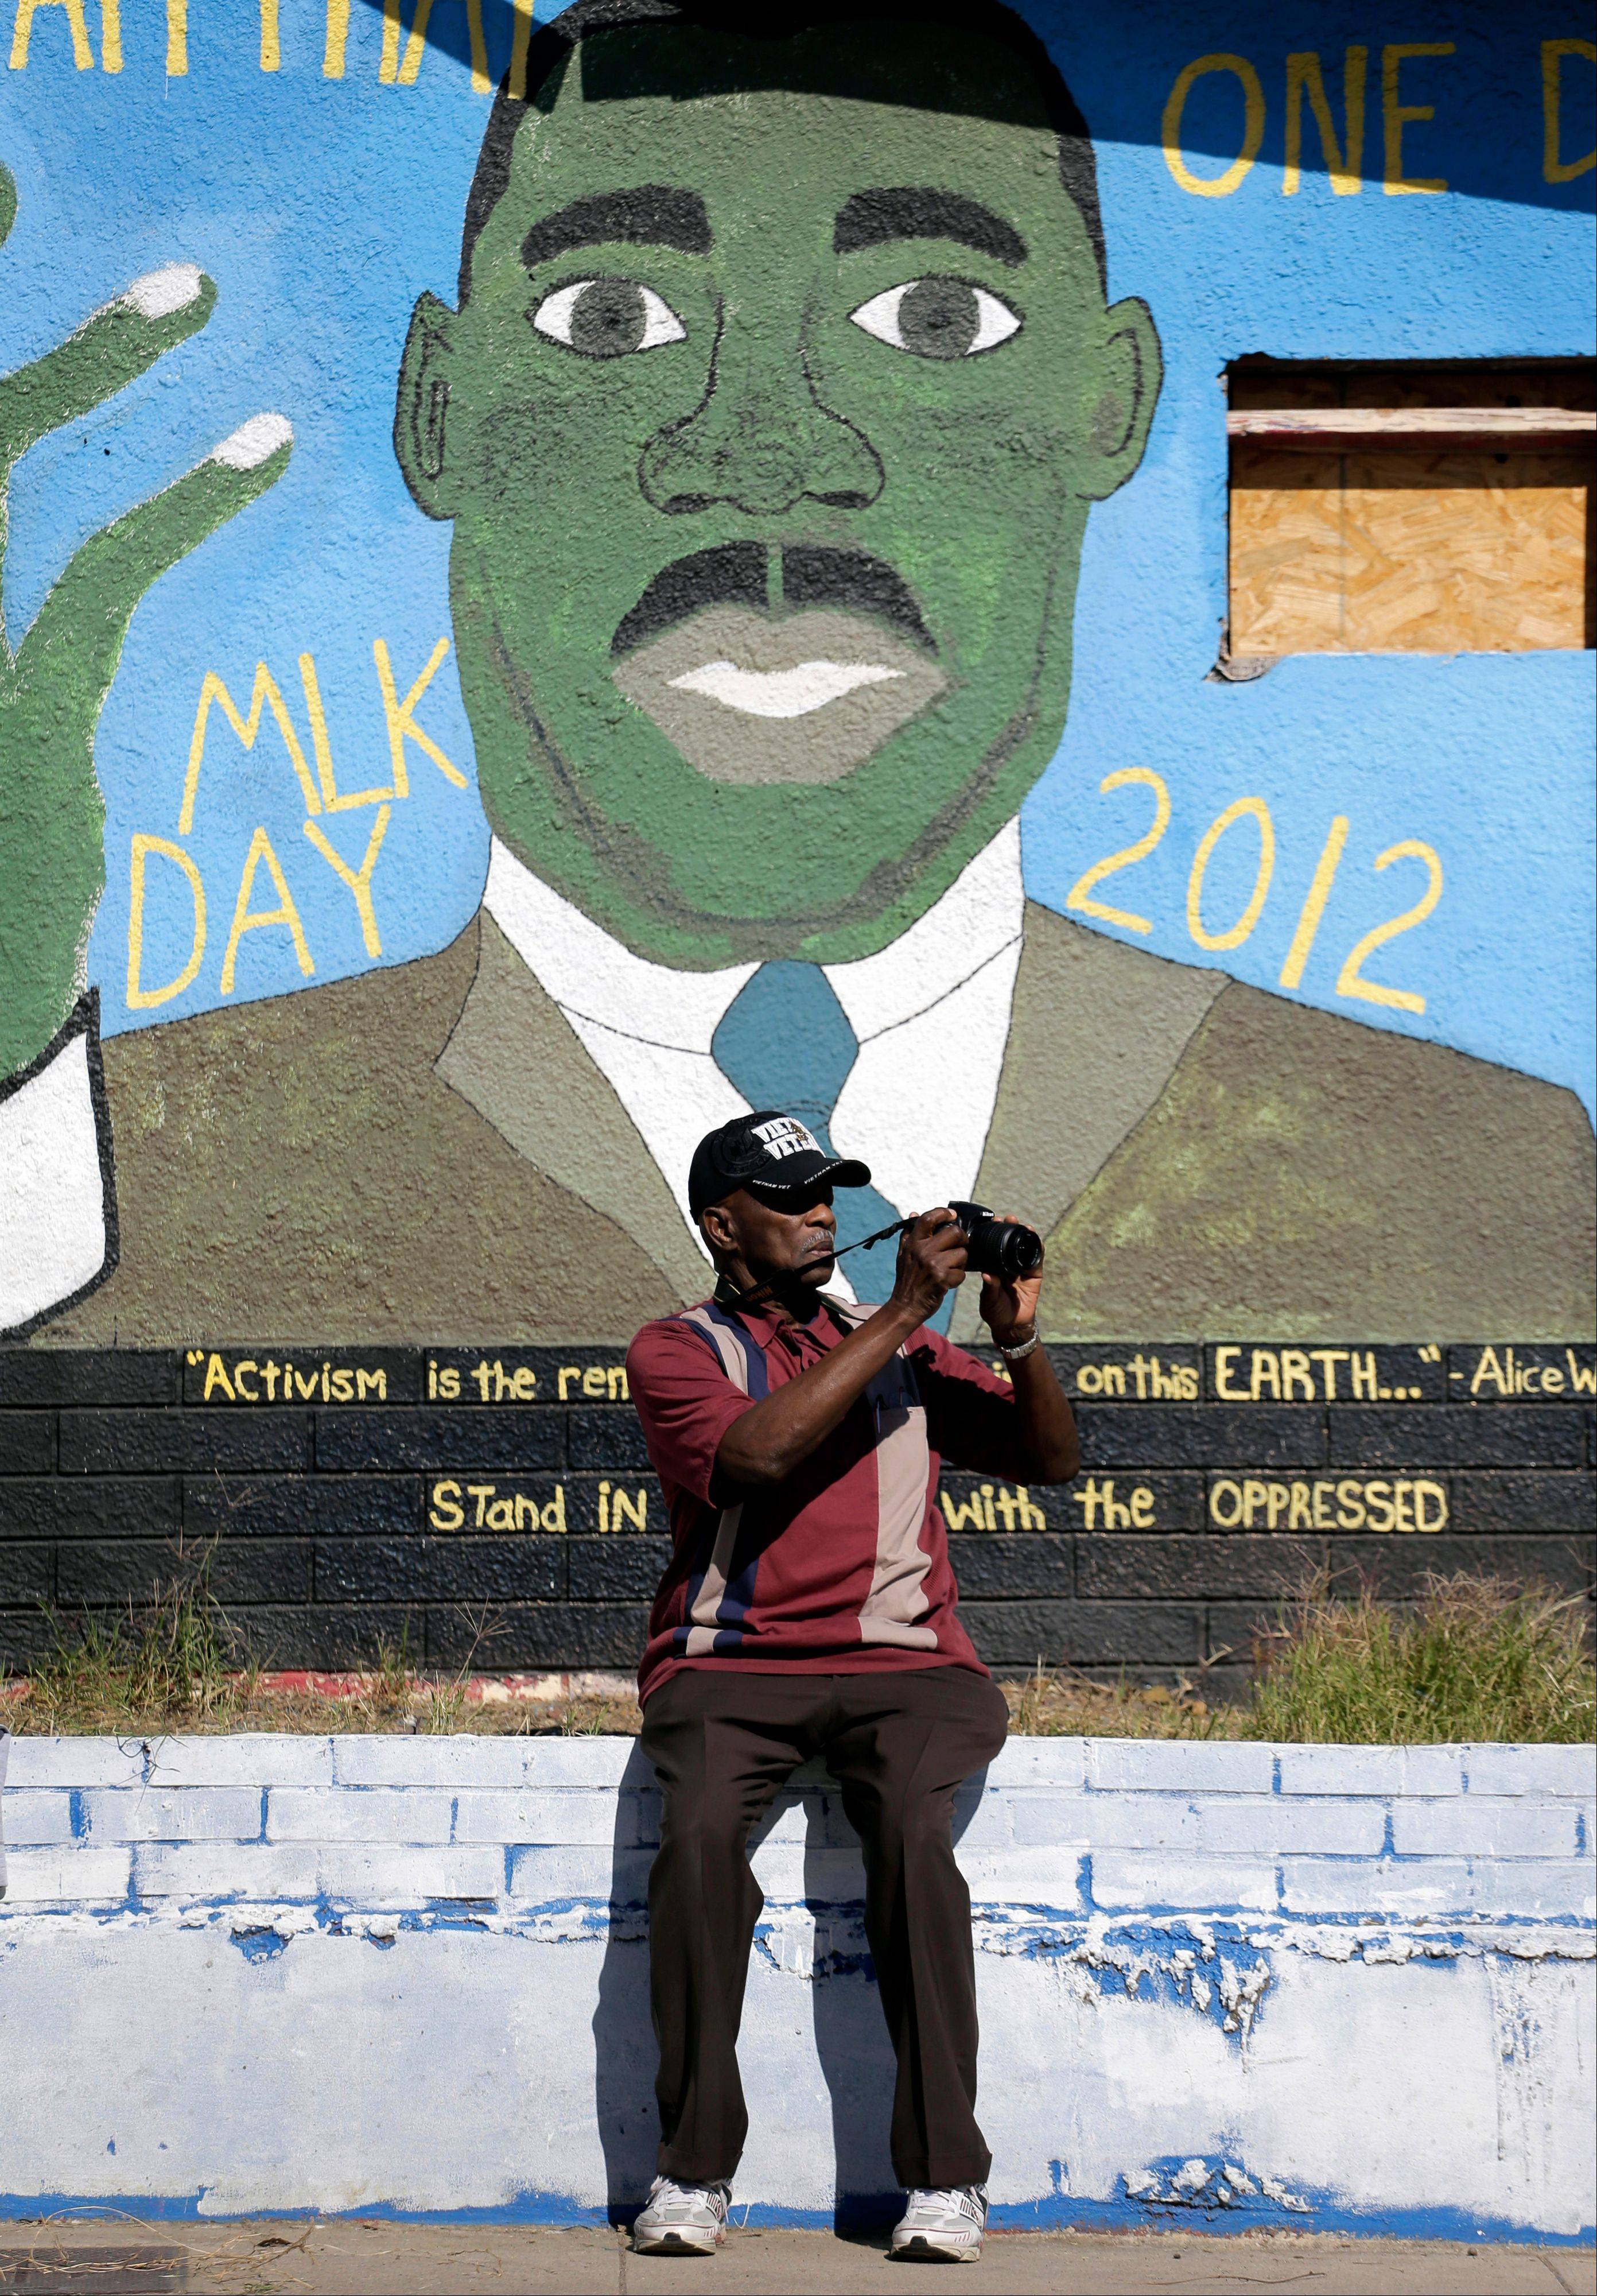 A man stops to take photos during a march honoring Martin Luther King Jr., Monday, Jan. 20, 2014, in San Antonio. Parades and celebrations have been scheduled across Texas to honor Martin Luther King Jr. on the federal holiday in his name.